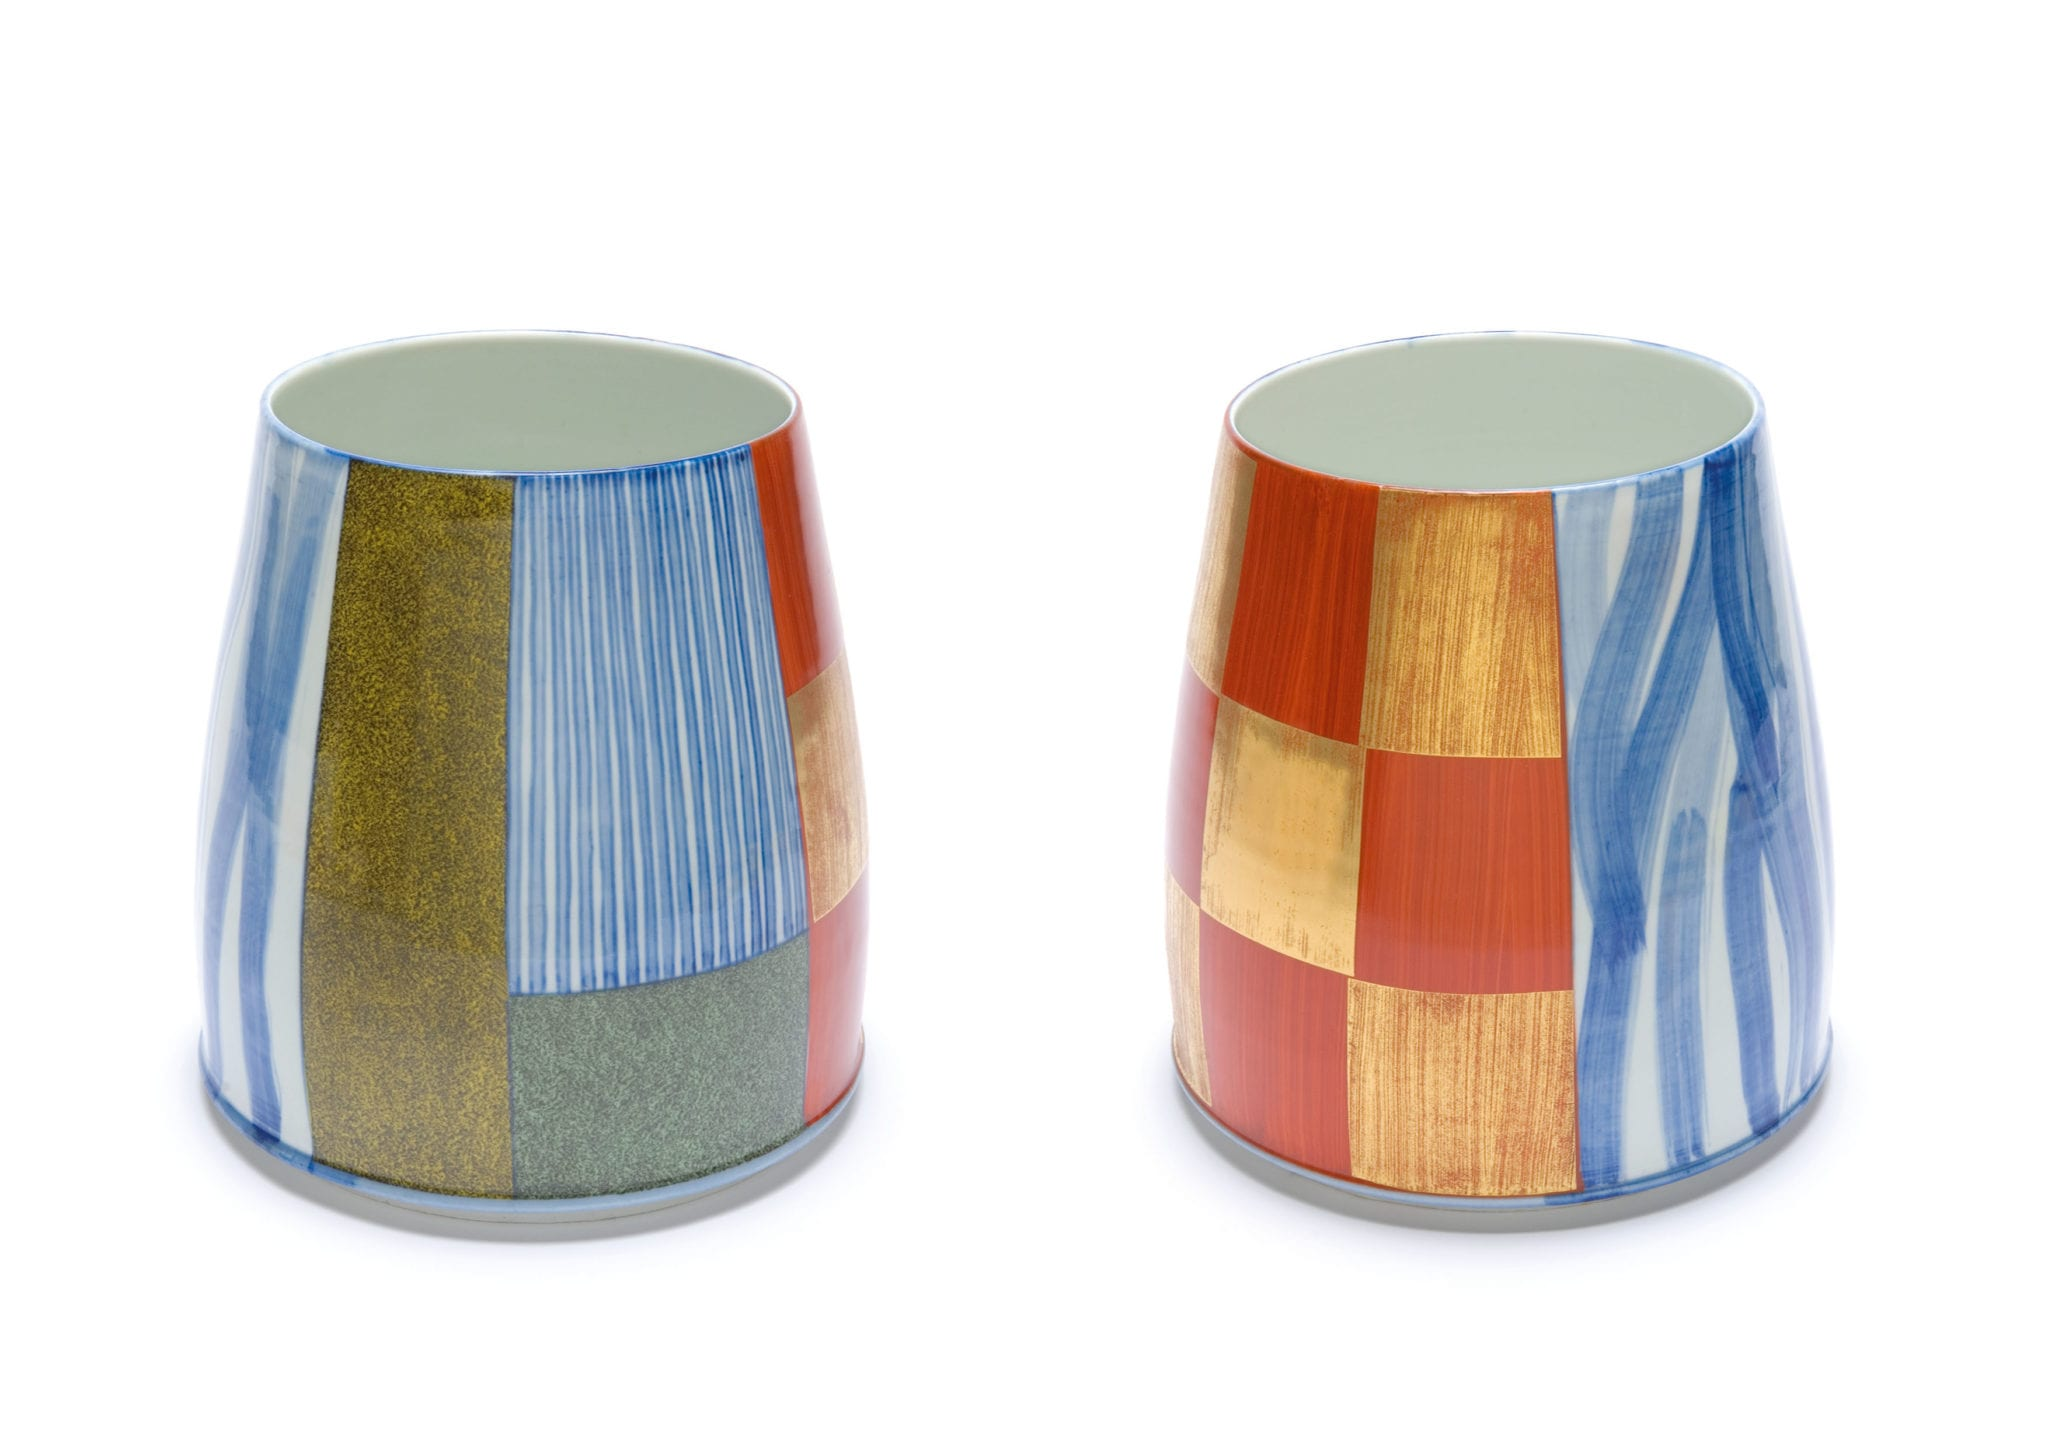 Kevin White 'Two Vessels', 2007 H.23.0.W.23.5, courtesy the artist